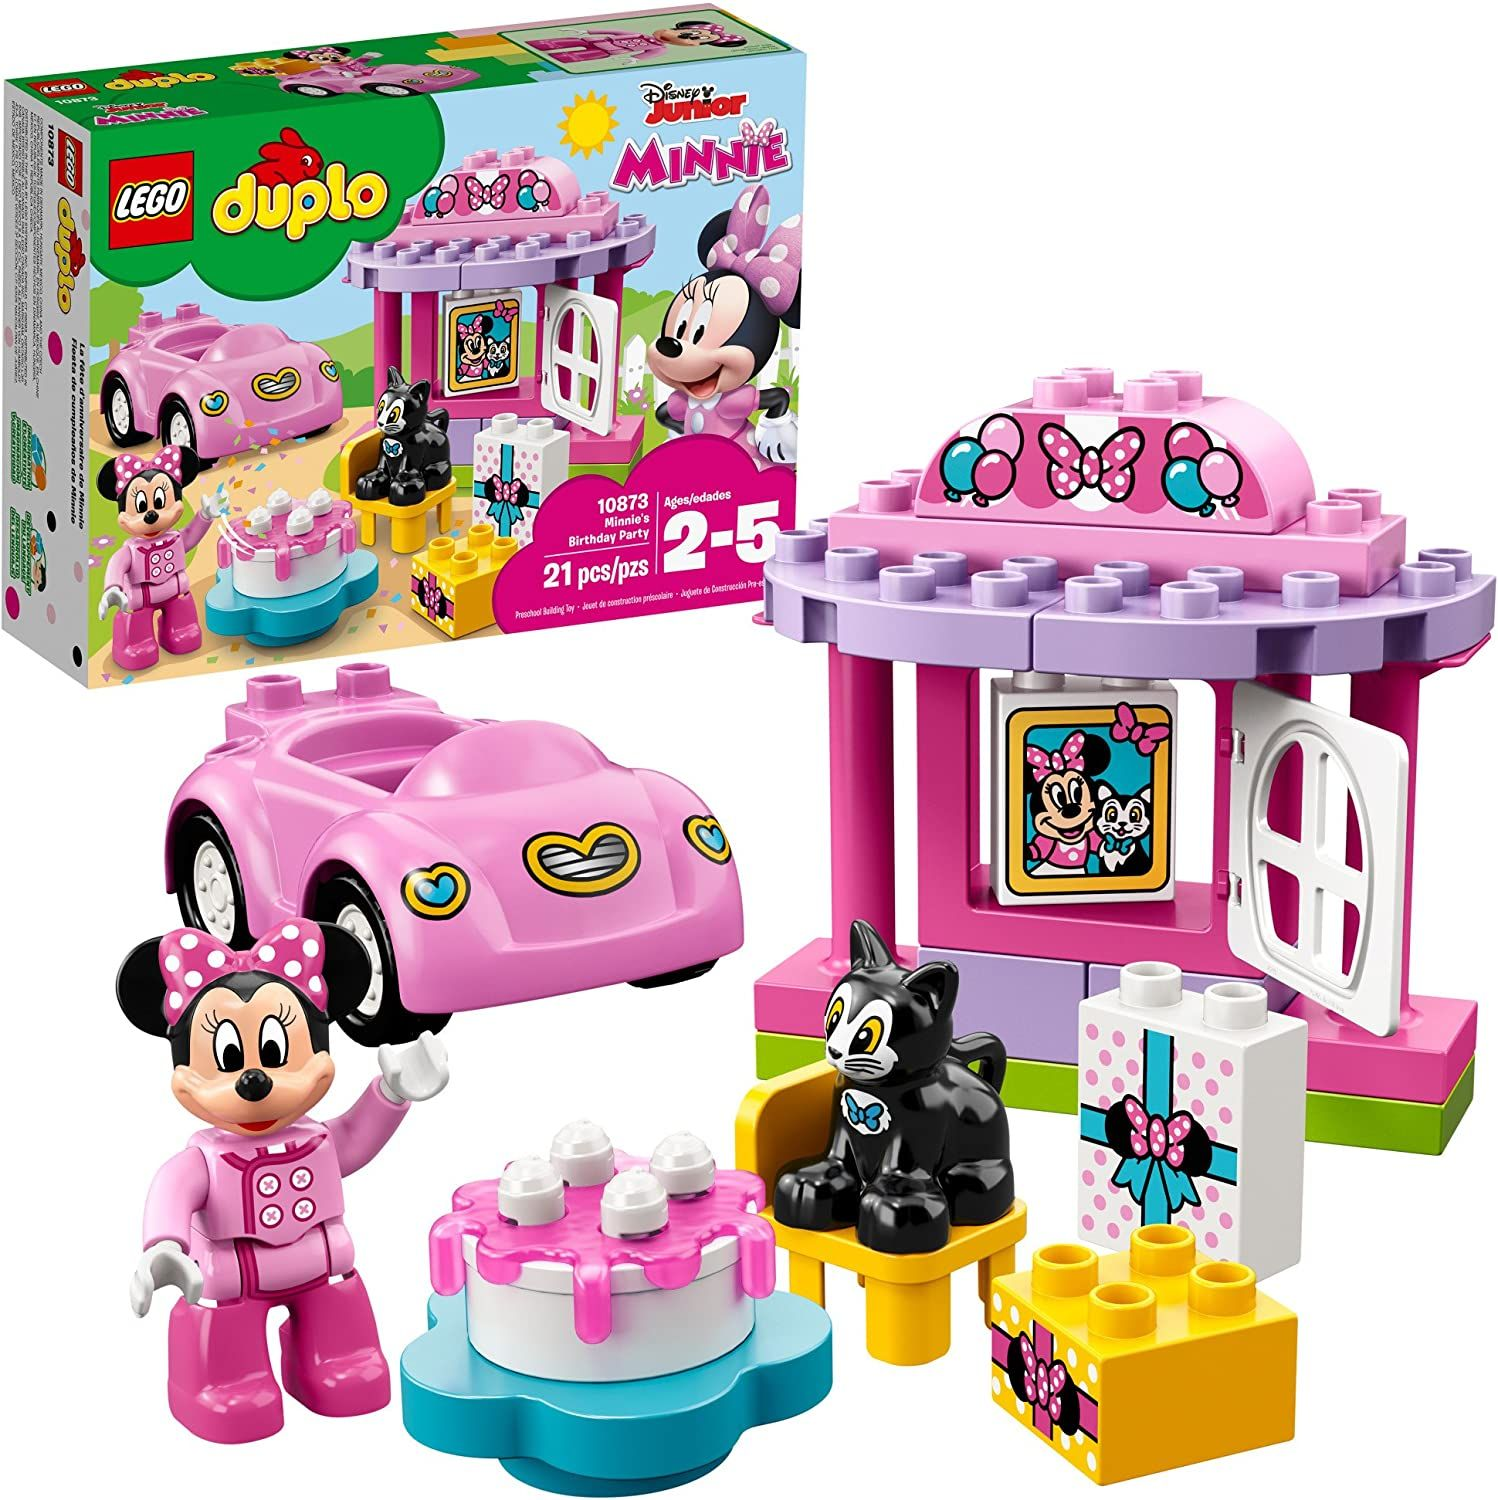 Photo of LEGO DUPLO Minnie's Birthday Party 10873 Building Blocks (21 Pieces) by LEGO